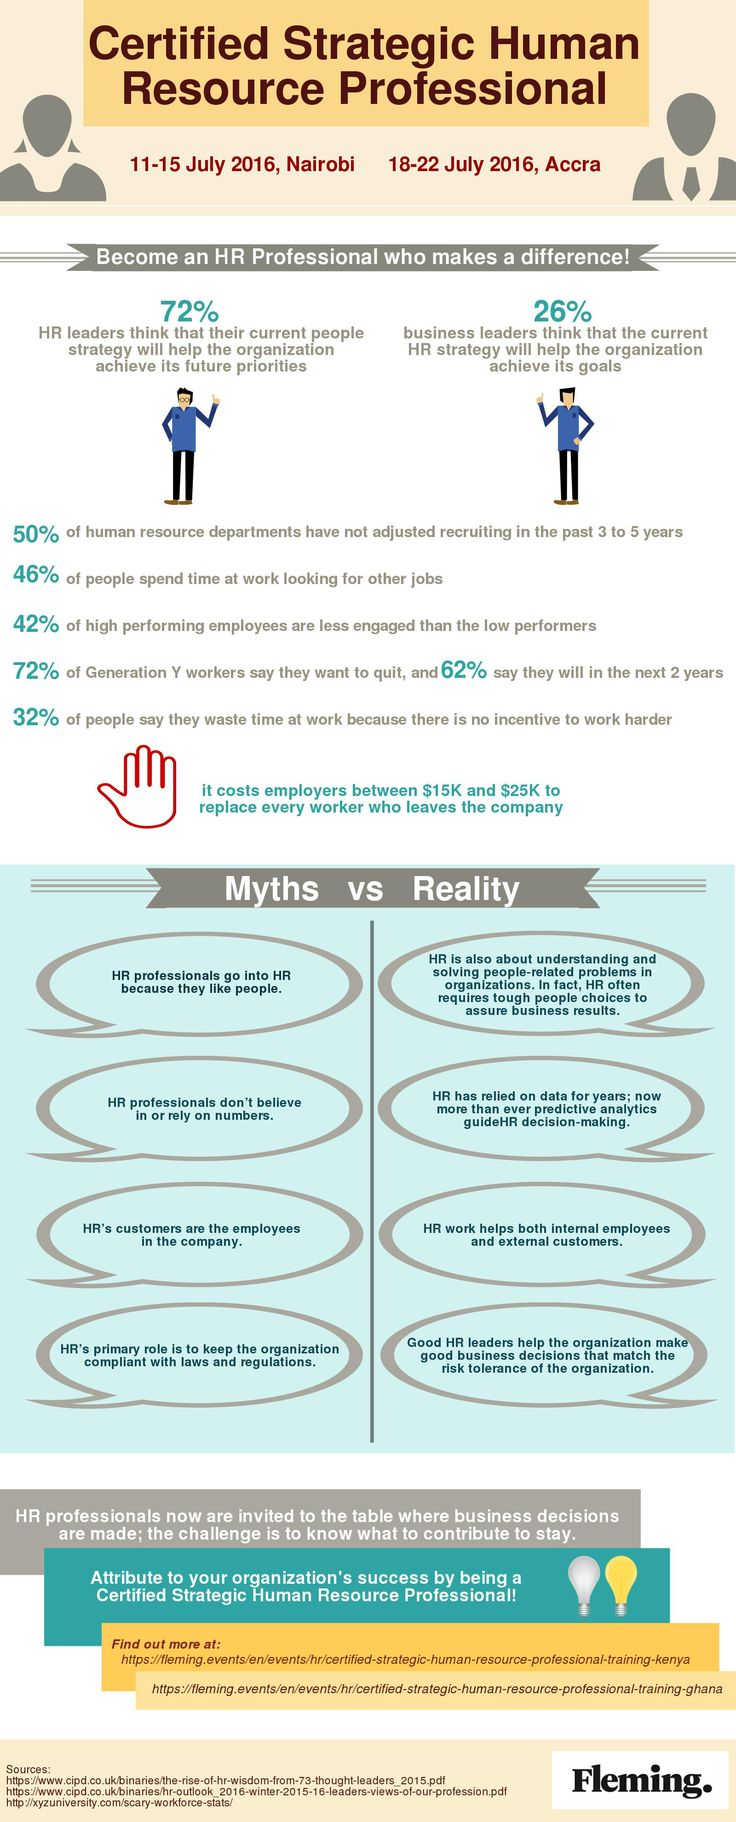 Take a look at the infographic about HR statistics and the myths vs. reality concerning HR Professionals.